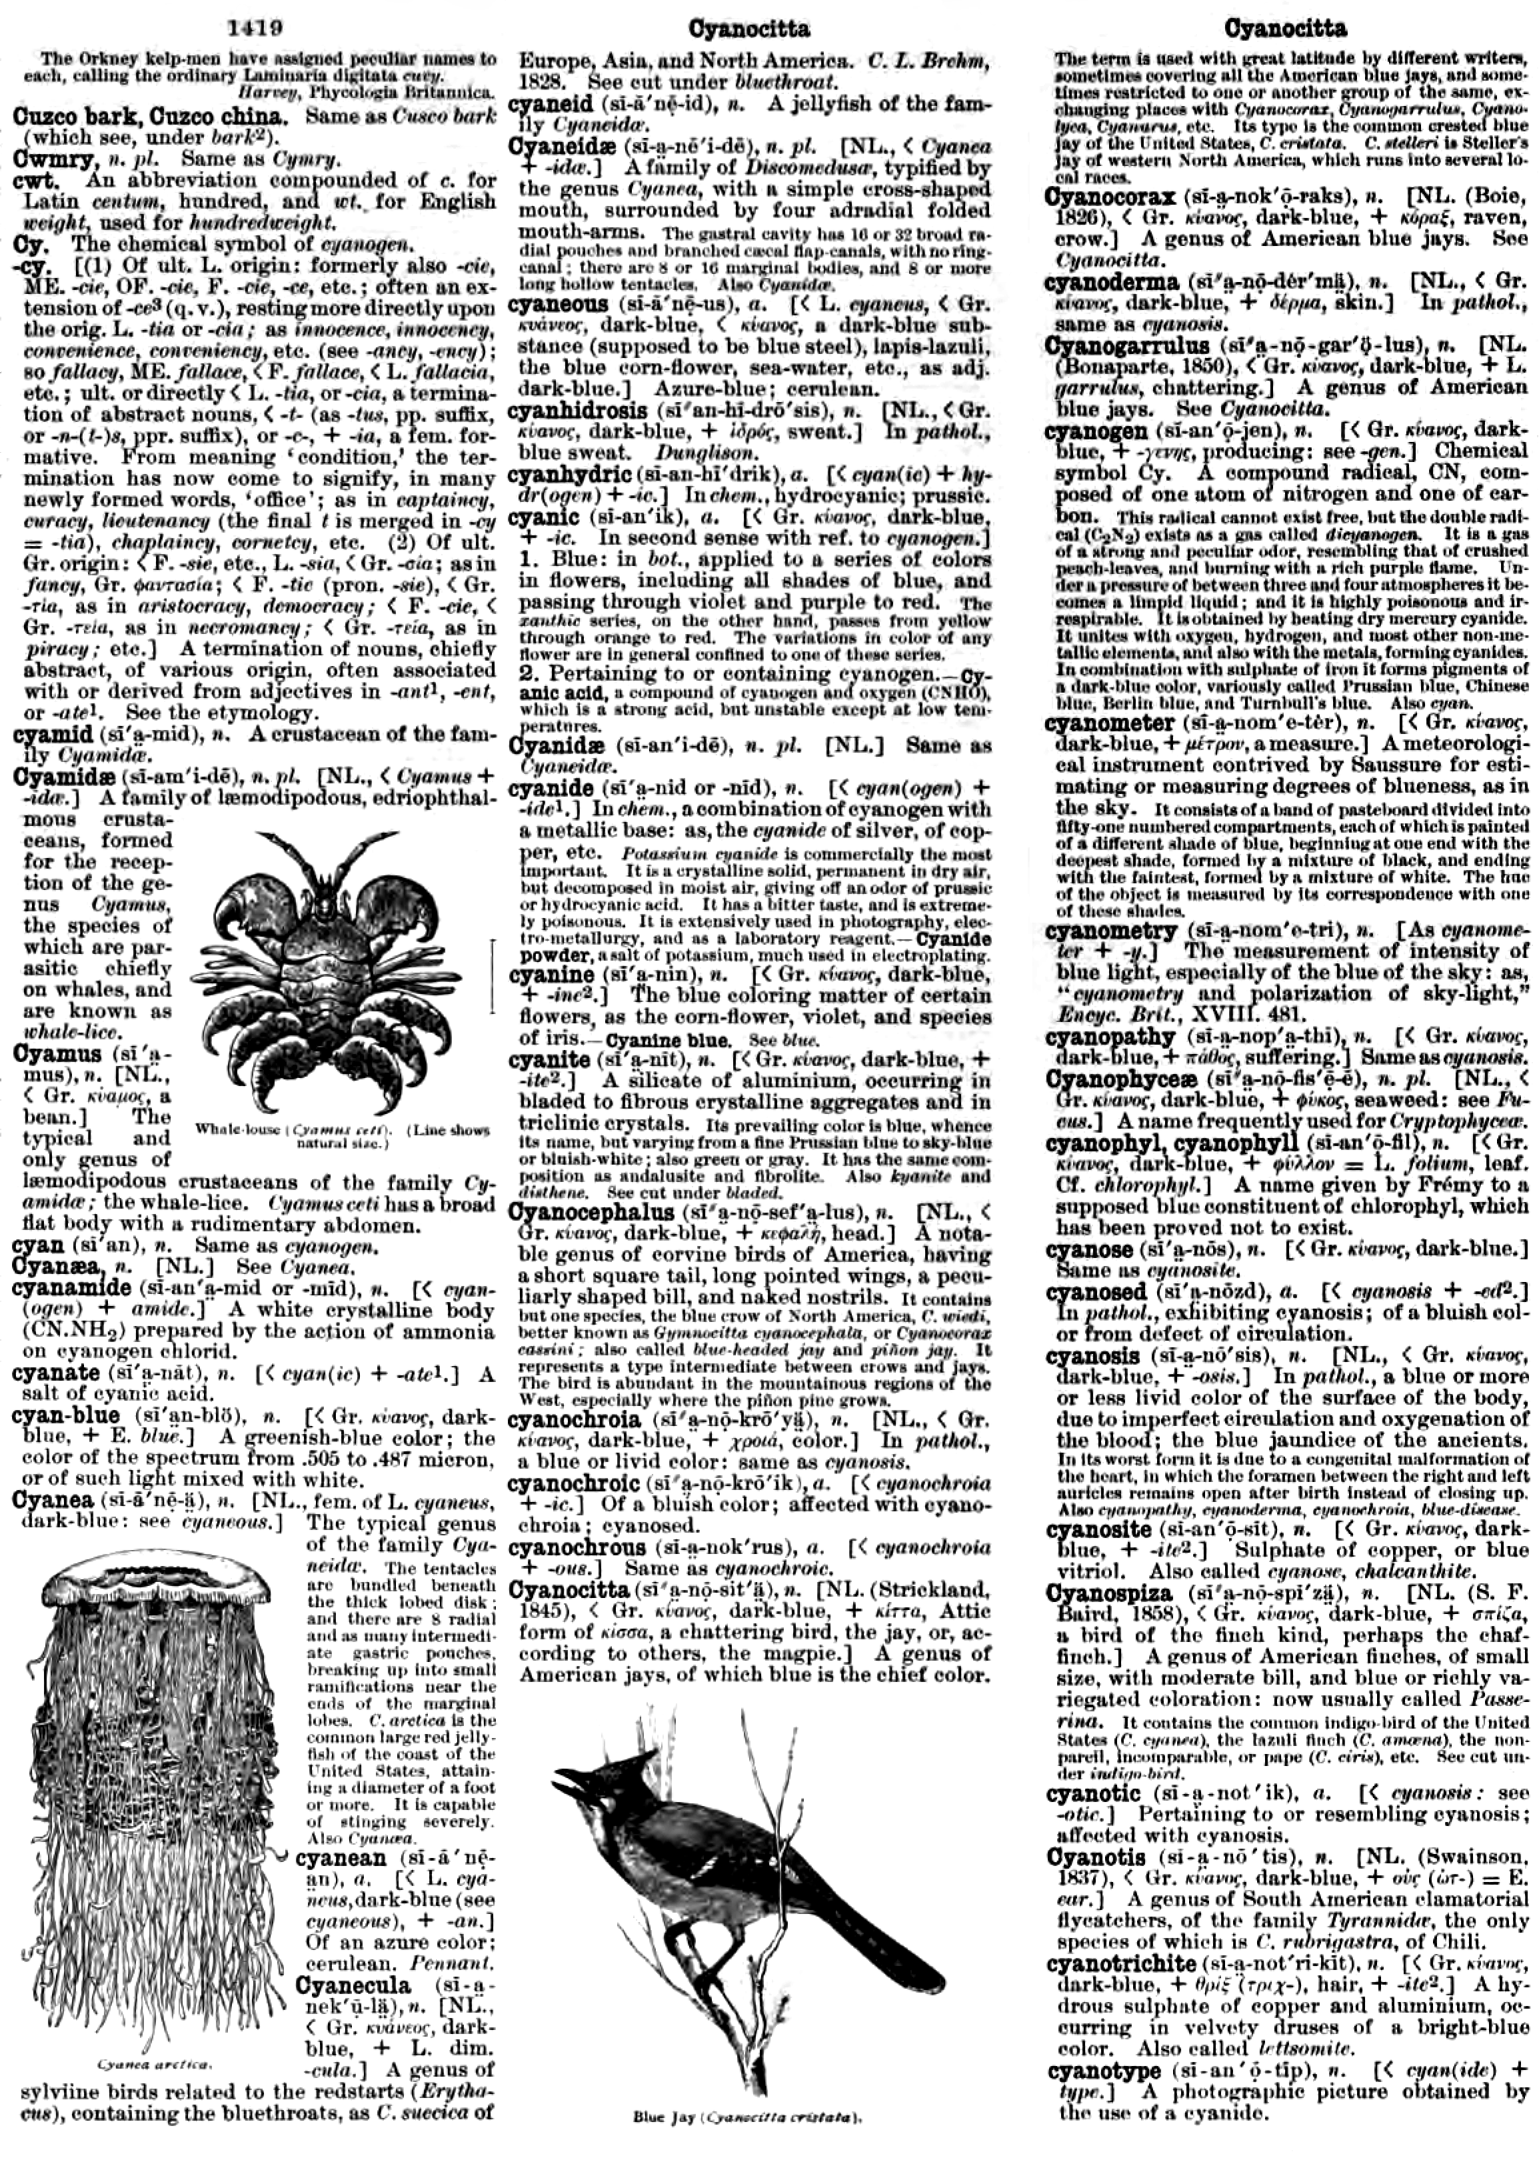 File:Cyan in Dictionary 1889 png - Wikimedia Commons